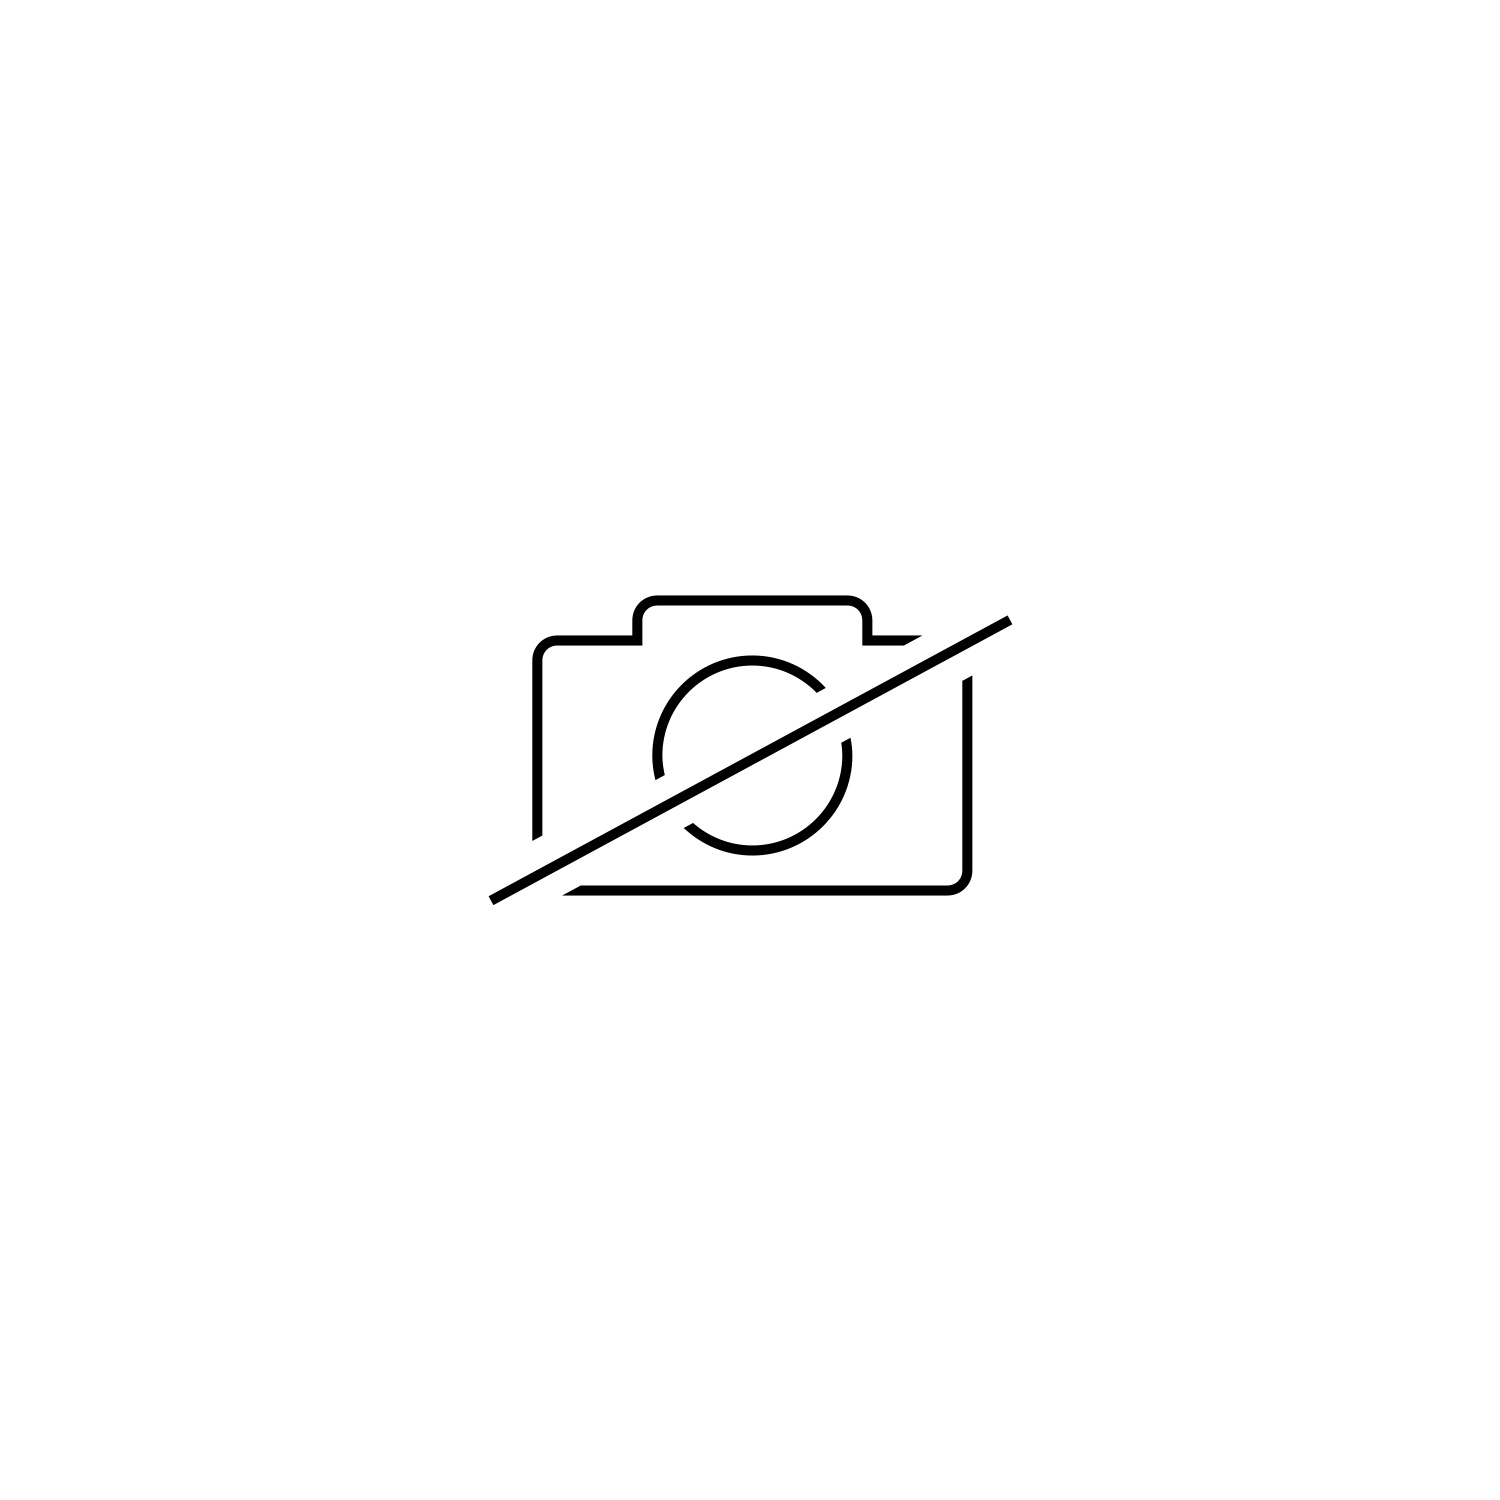 "Jacken & Pullover > Damen > Bekleidung > Audi collection"" title=""Jacken & Pullover > Damen > Bekleidung > Audi collection""><br />Jacken & Pullover > Damen > Bekleidung > Audi collection<br /><img src="